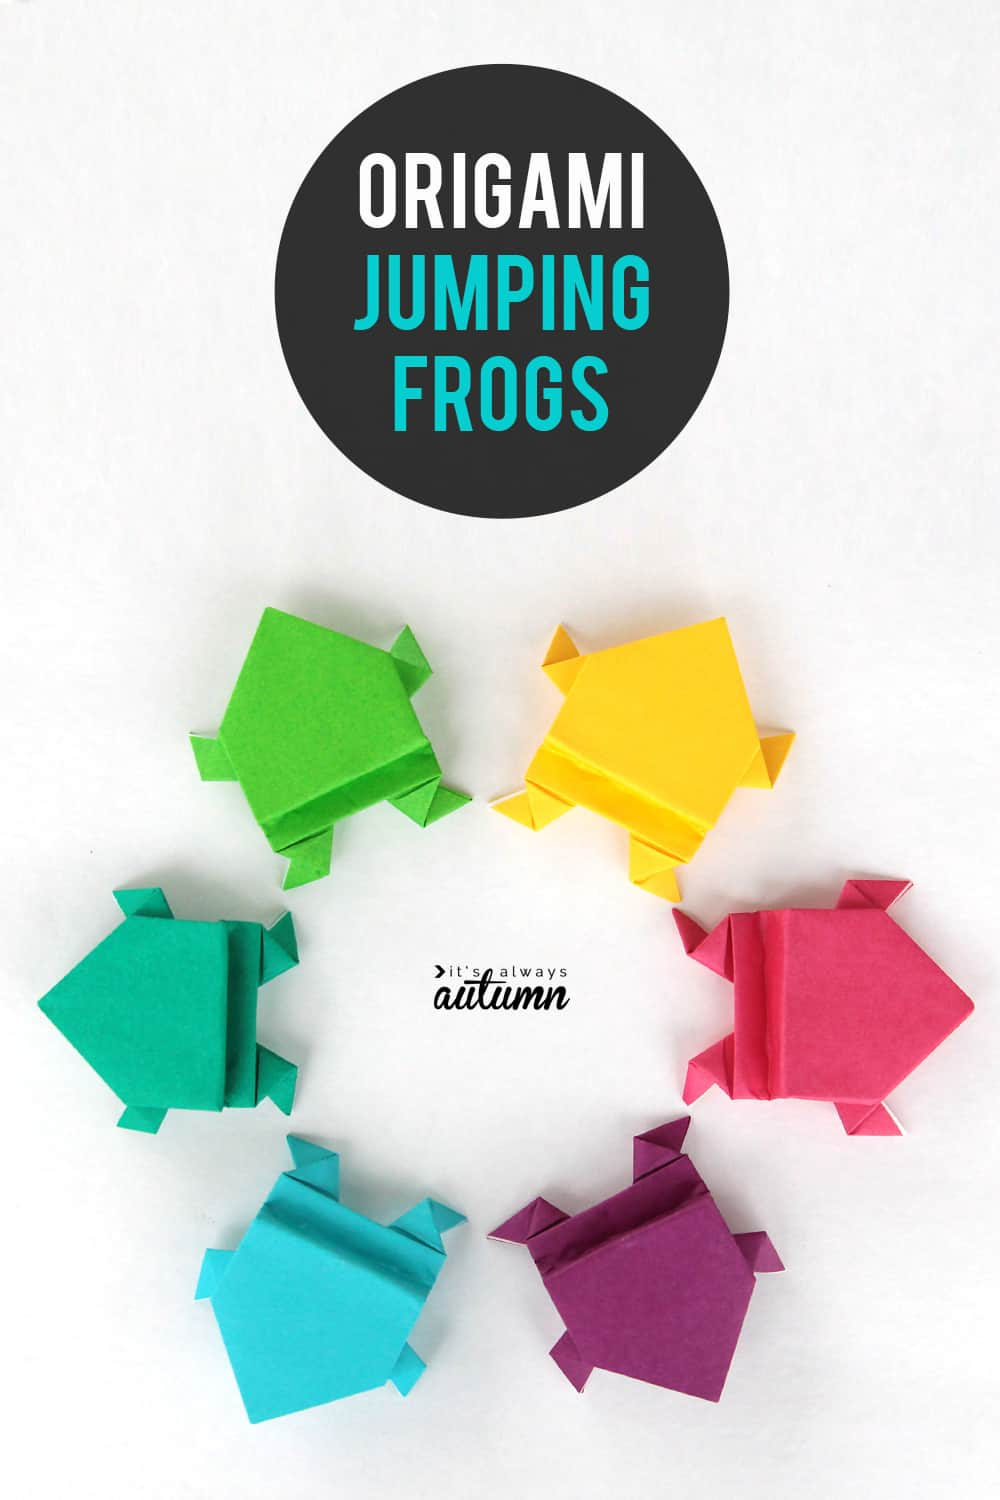 Origami jumping frogs